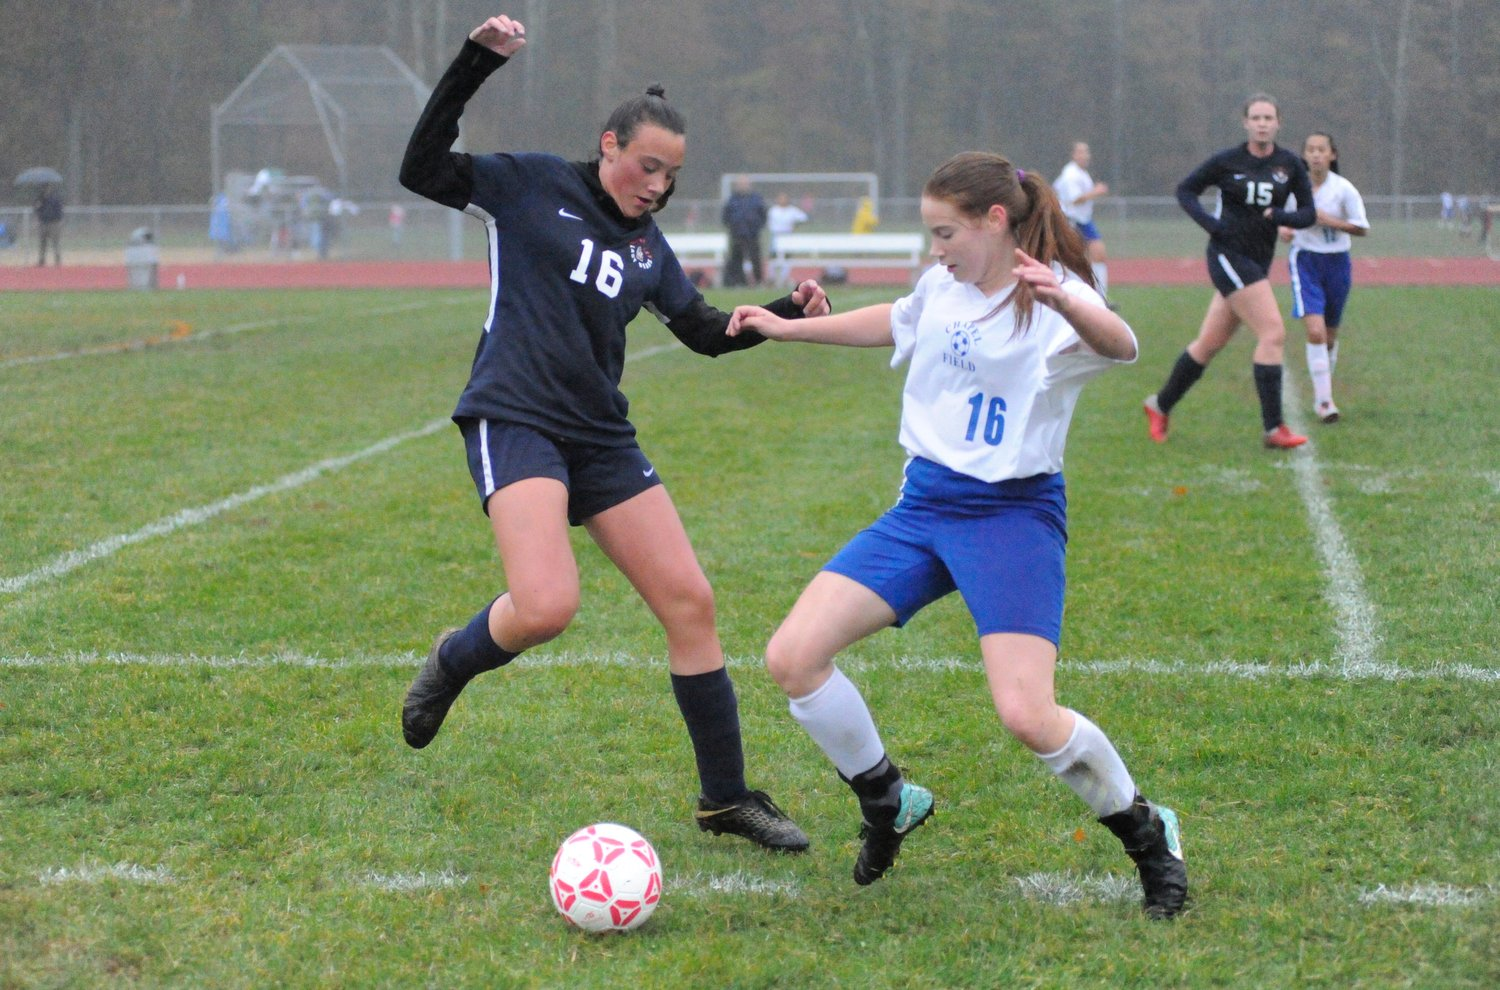 Fancy footwork. Tri-Valley's Juliana Kessler takes on Lillian Brooks of the Lady Lions.